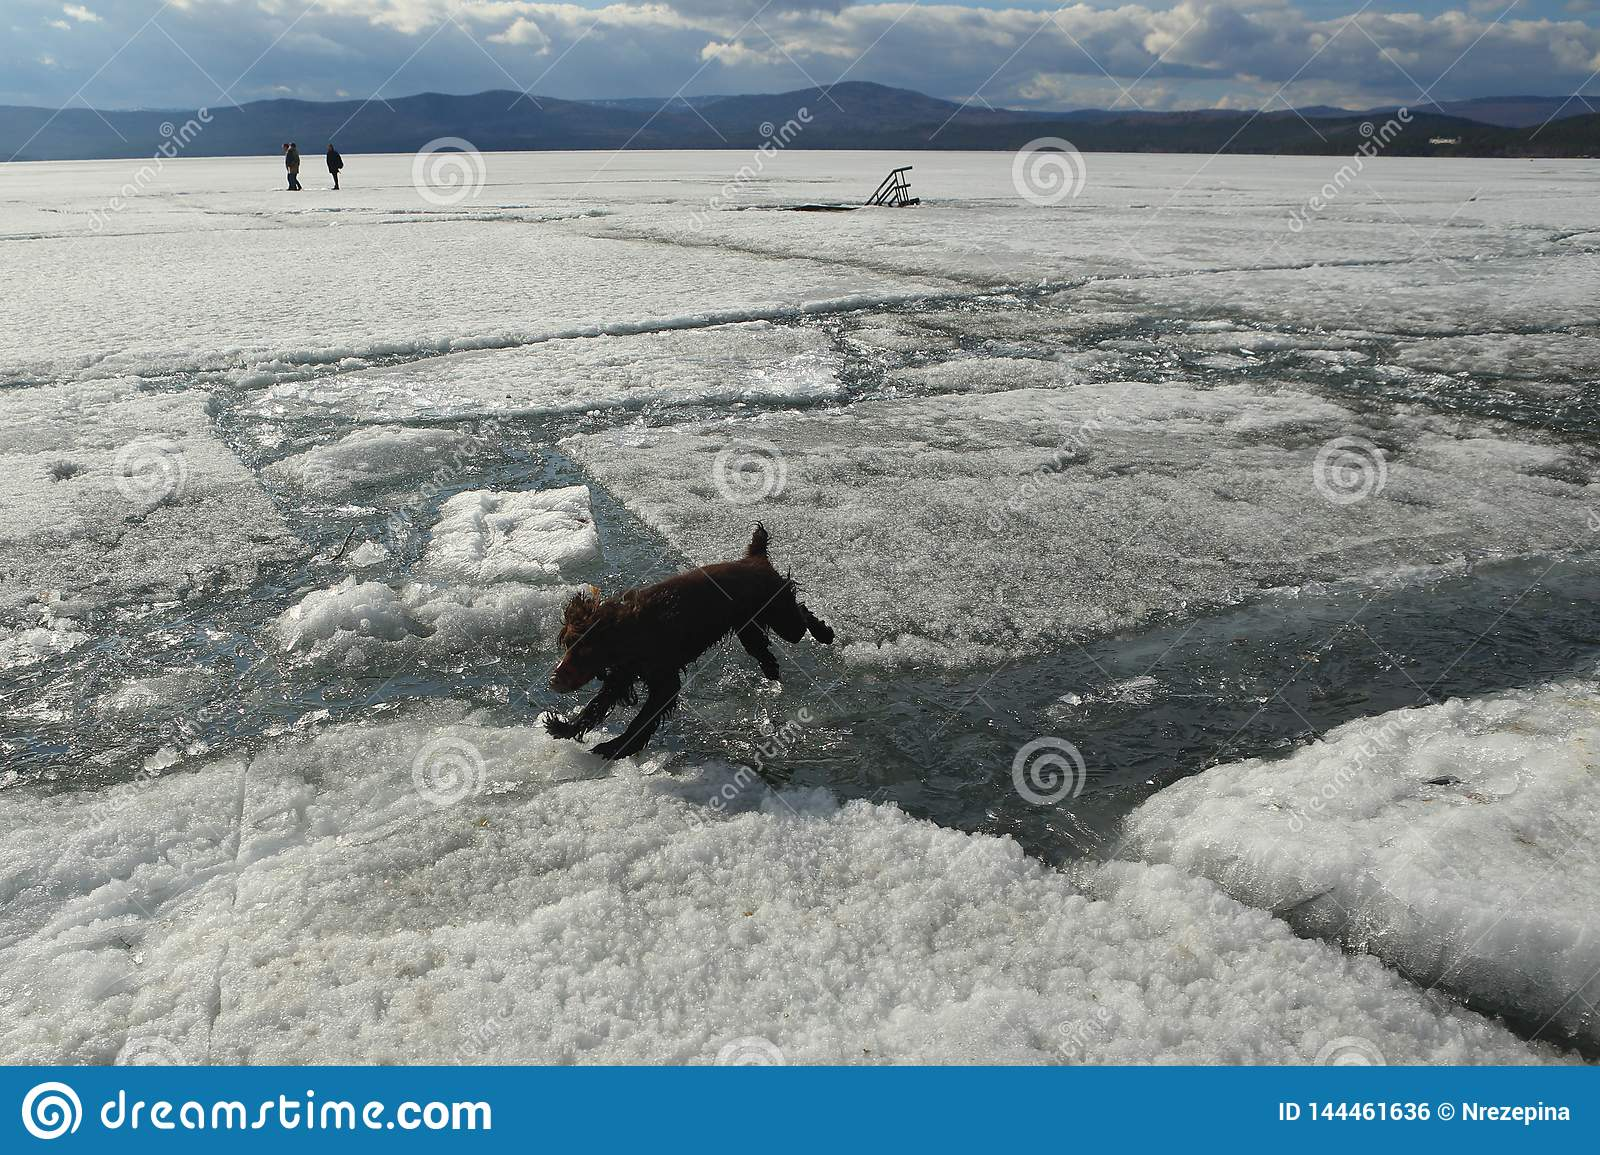 The dog jumps from the lions to the ice during the ice drift on the lake